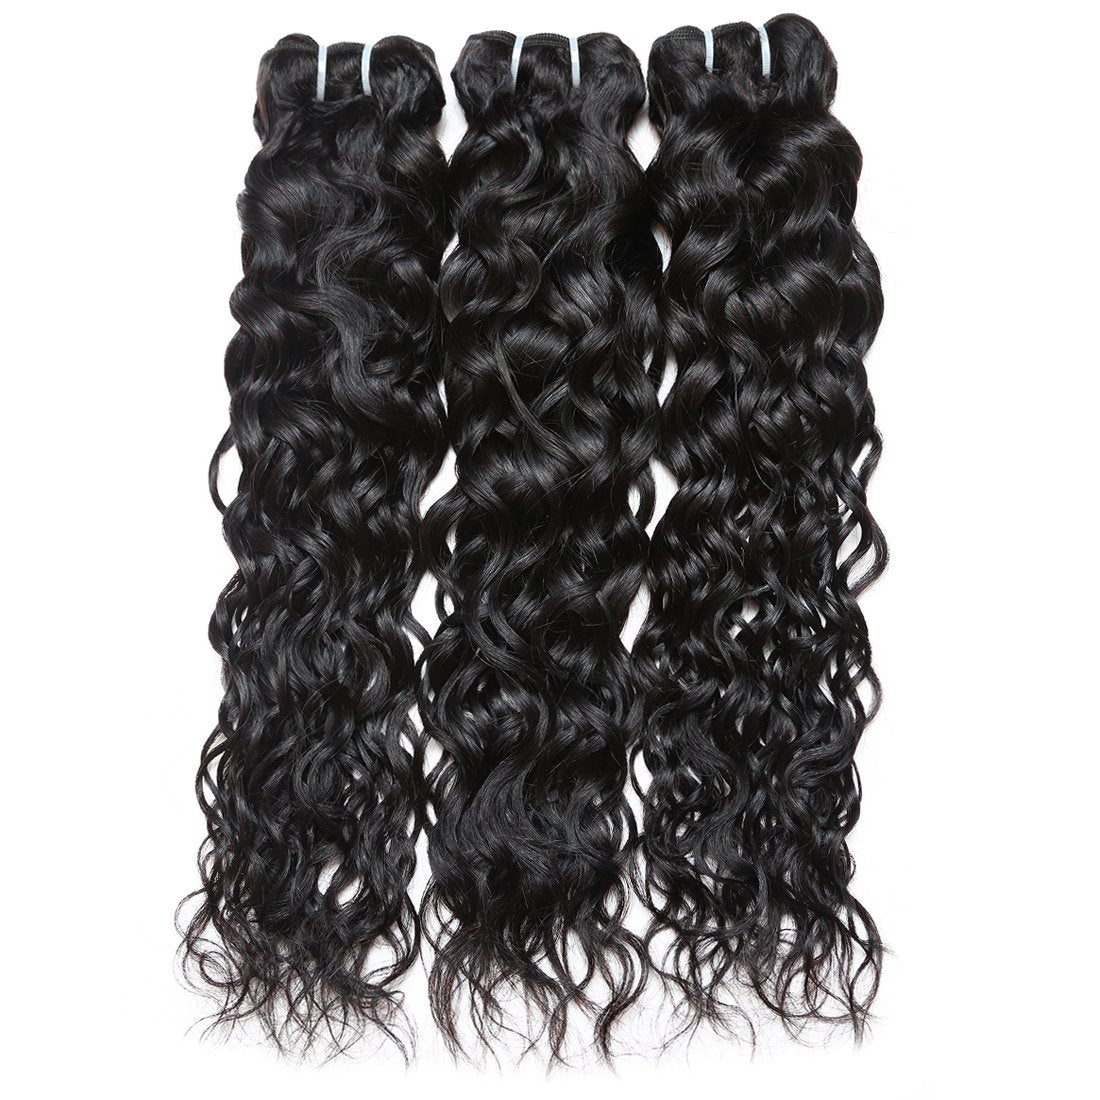 Ishow Hair Indian Water Wave Human Hair Extensions 3pcslot Easy Hair